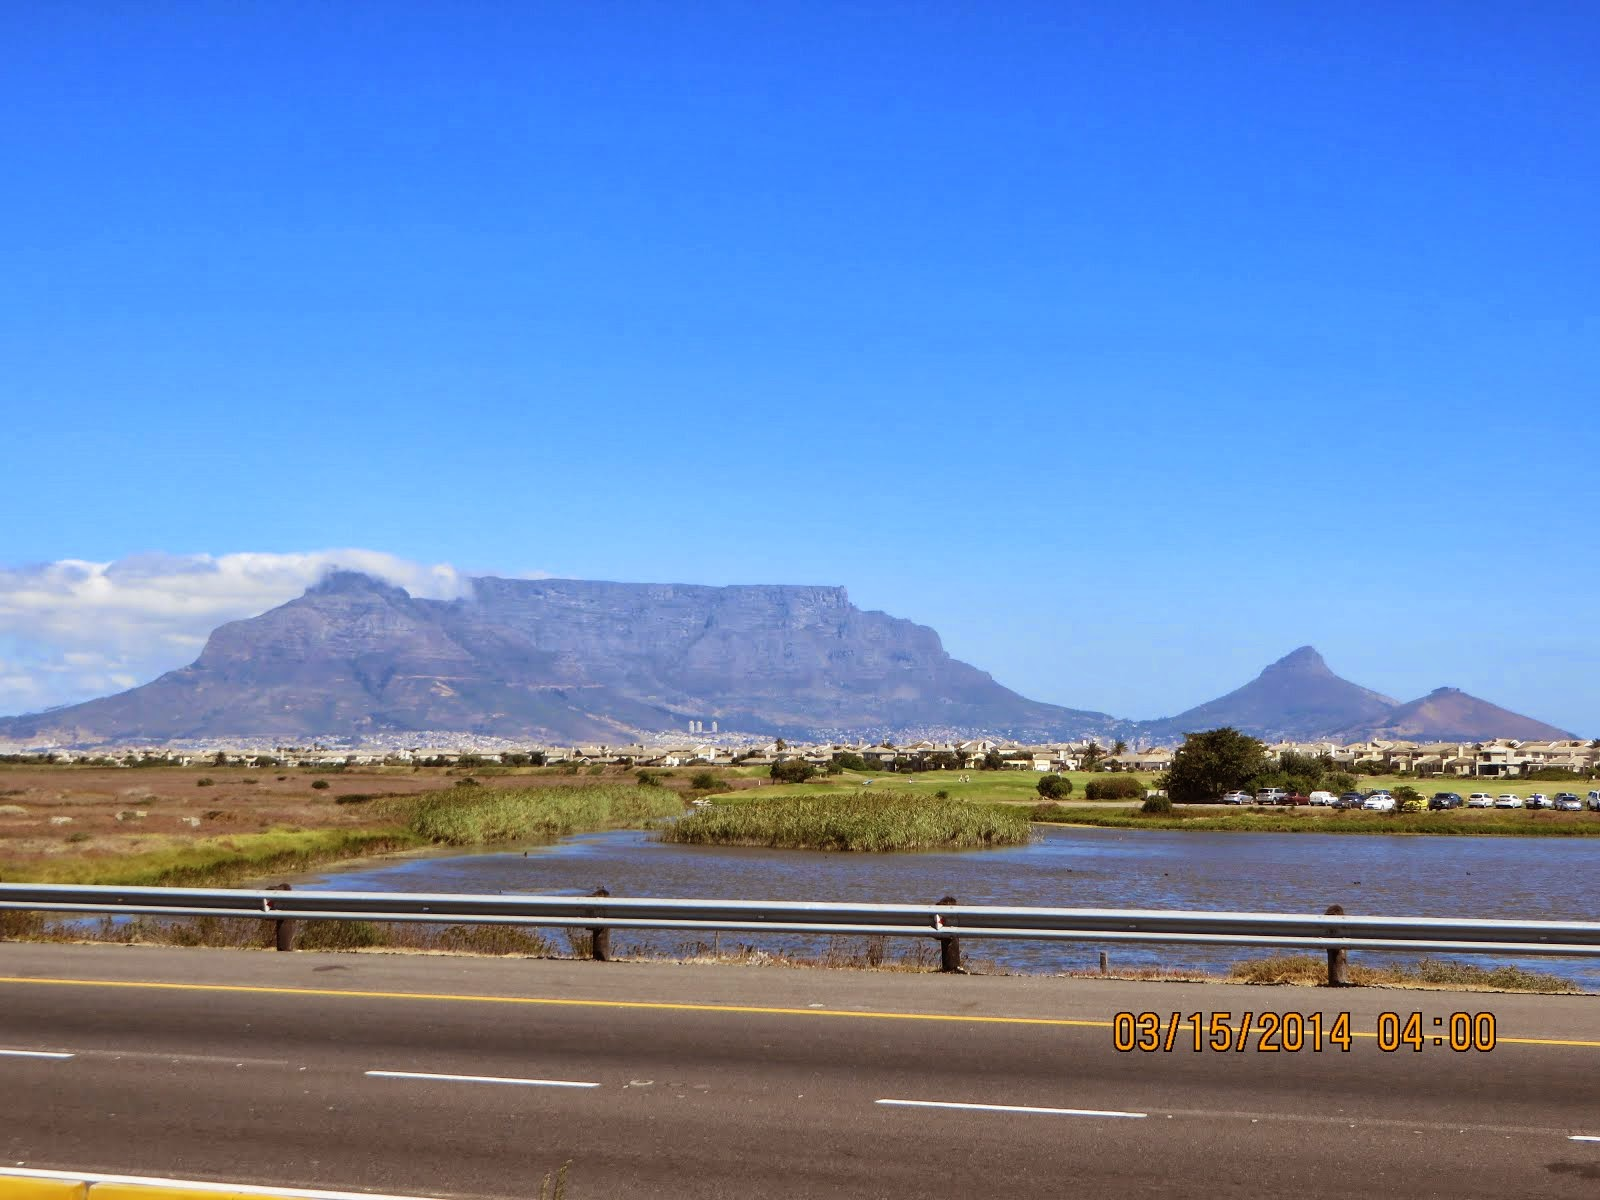 Table Mountain, the famous backdrop for Capetown